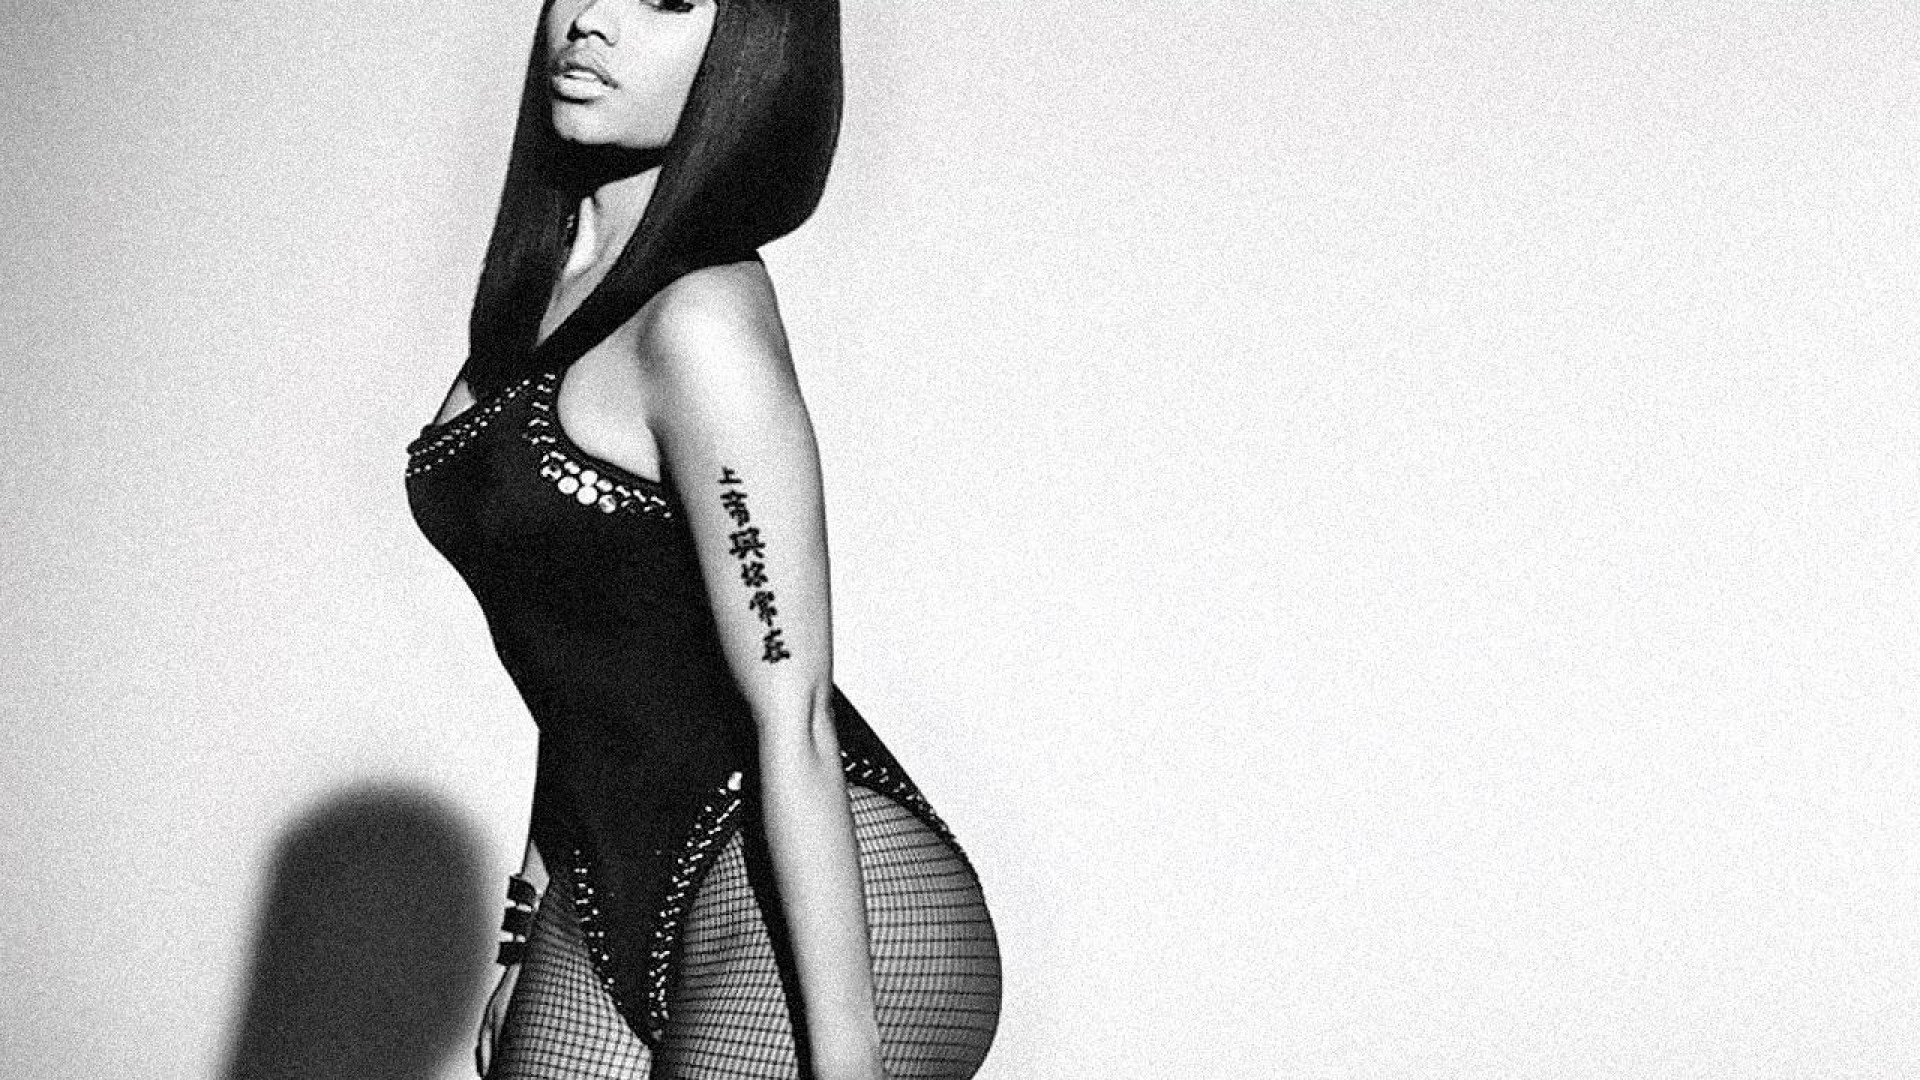 computer-for-nicki-minaj-by-Curt-Robertson-wallpaper-wpc5803626